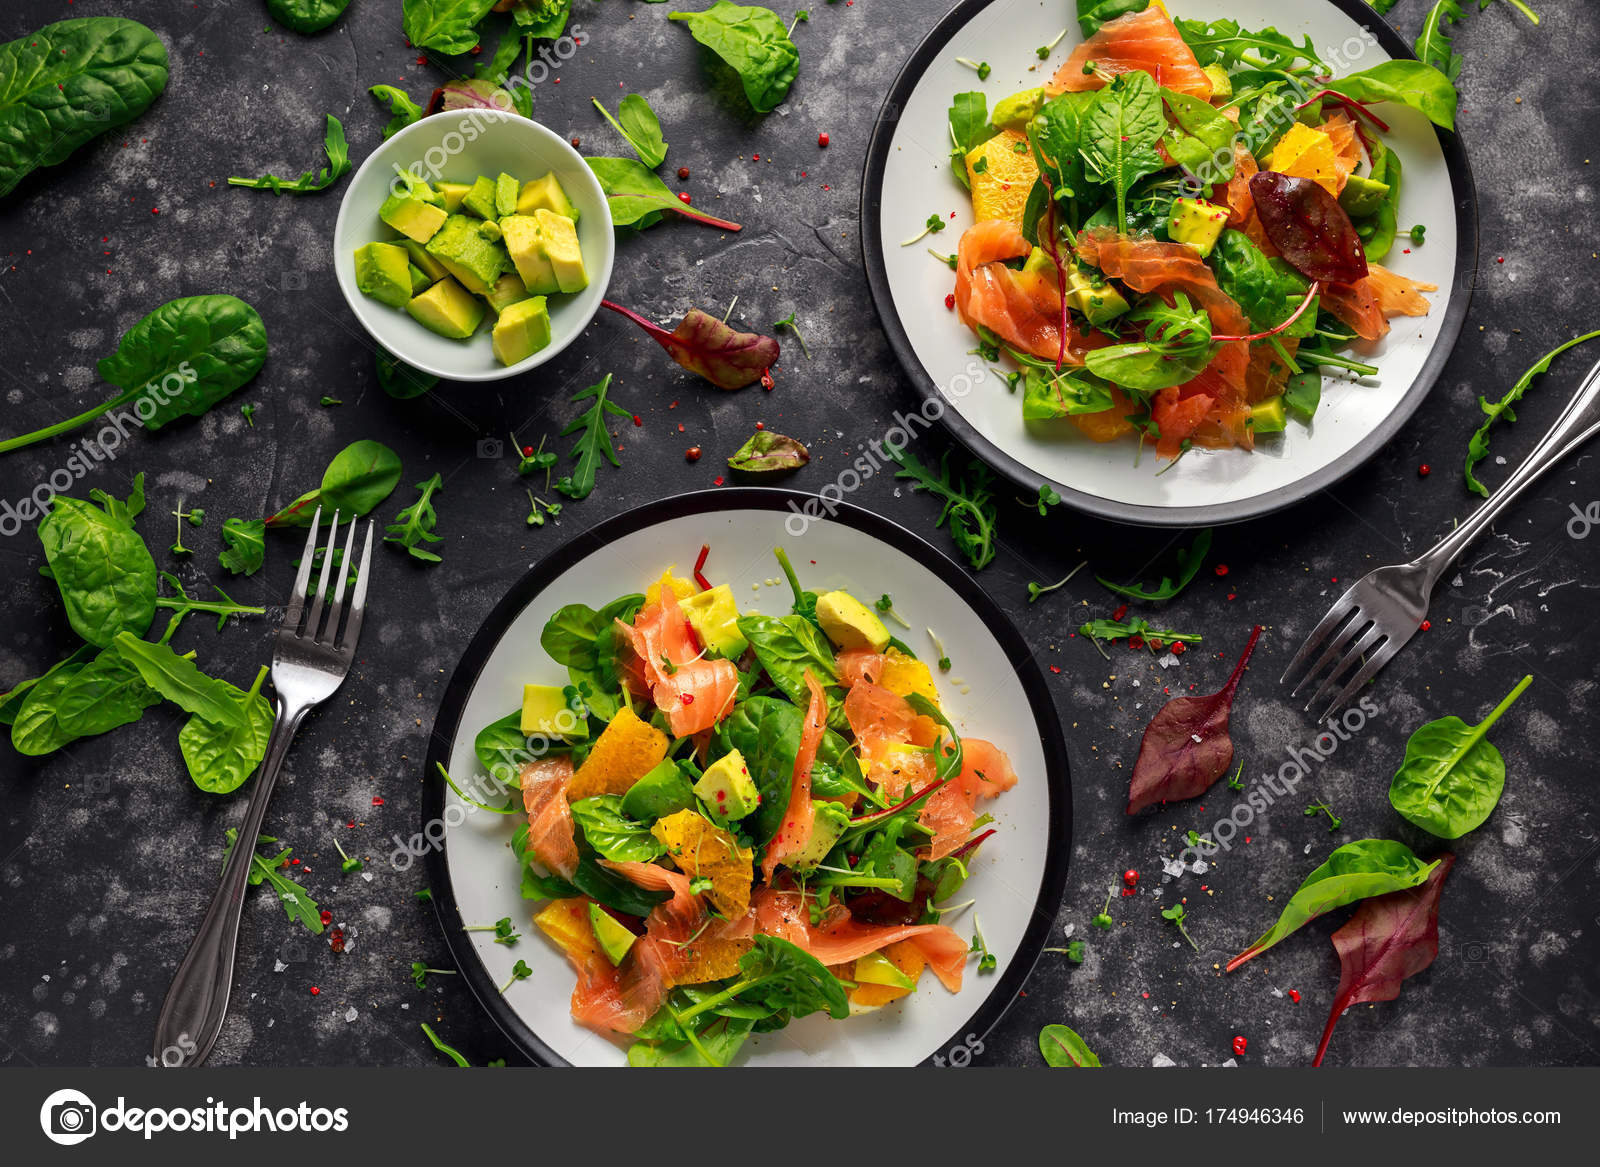 frischer lachs salat mit avocado orange und gr ne gem se stockfoto funandrejs. Black Bedroom Furniture Sets. Home Design Ideas